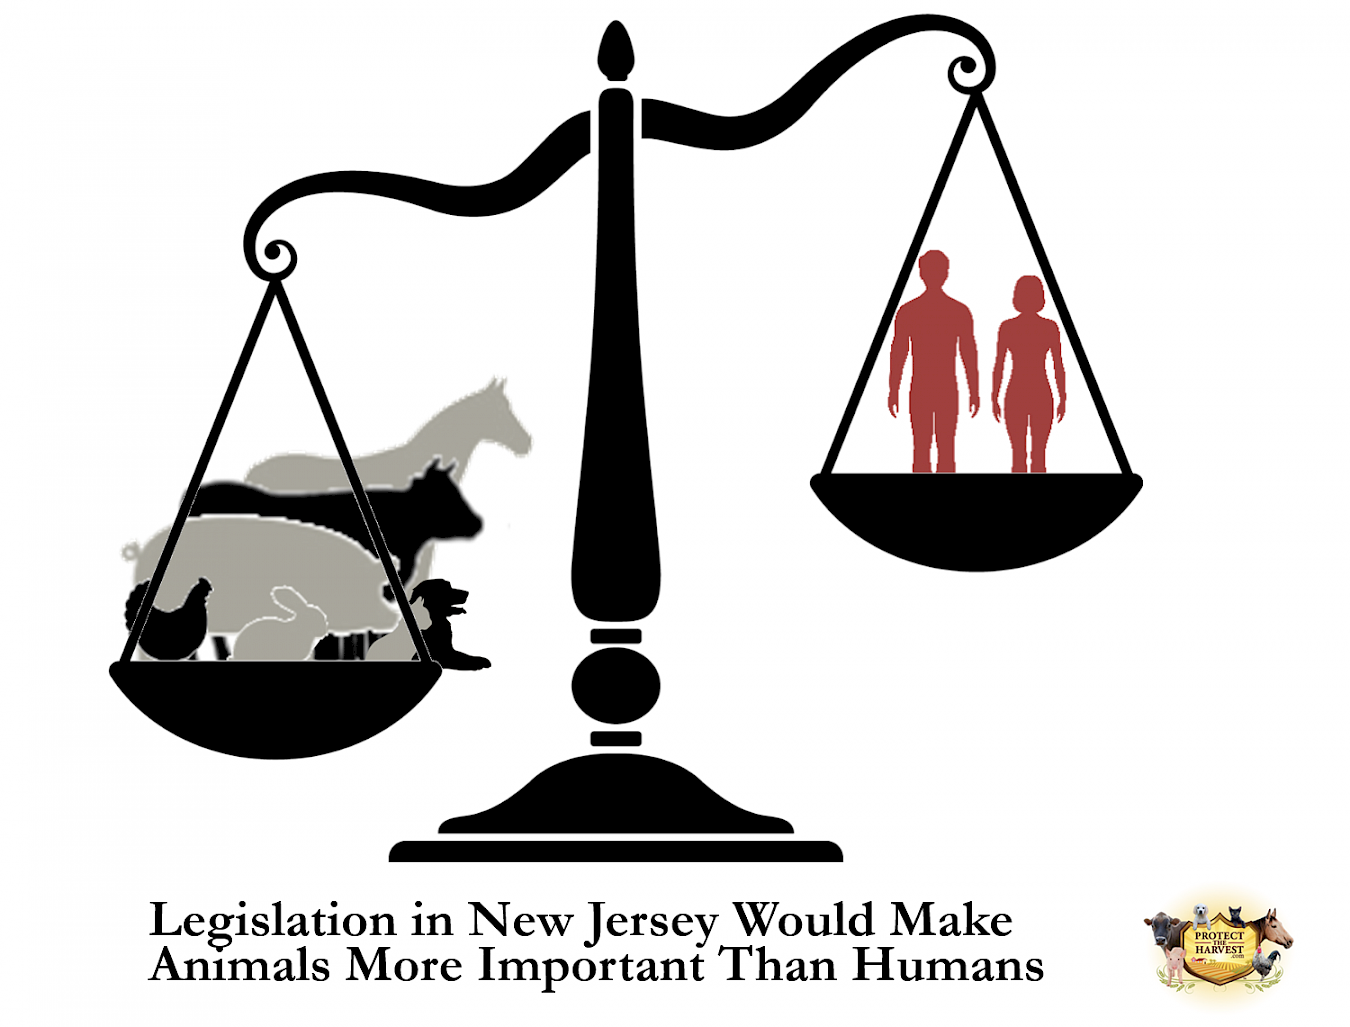 Legislation in New Jersey Would Make Animals More Important Than Humans